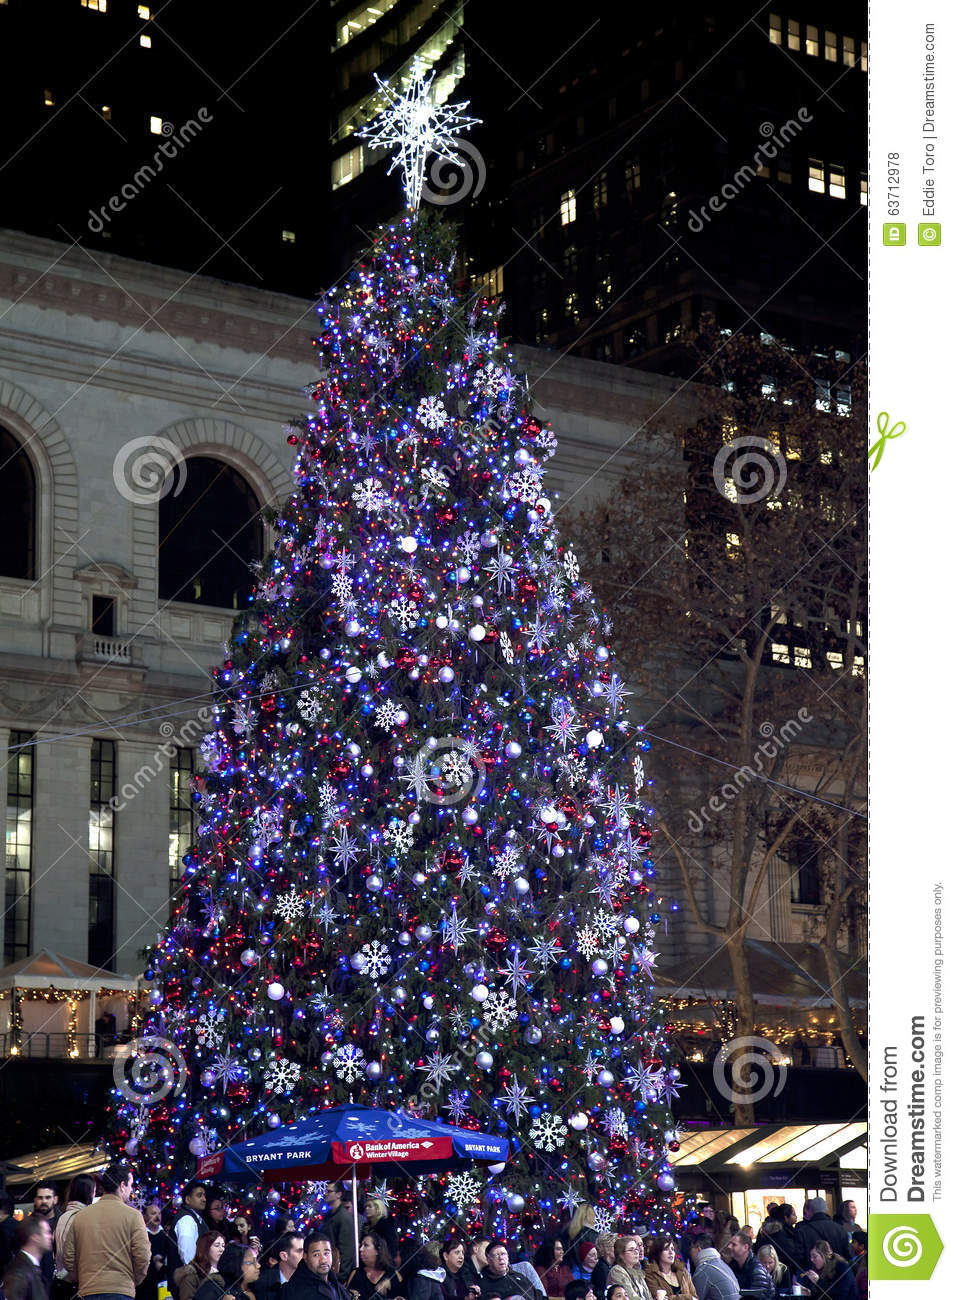 Bryant Park Christmas.People In Bryant Park With Christmas Tree In Background